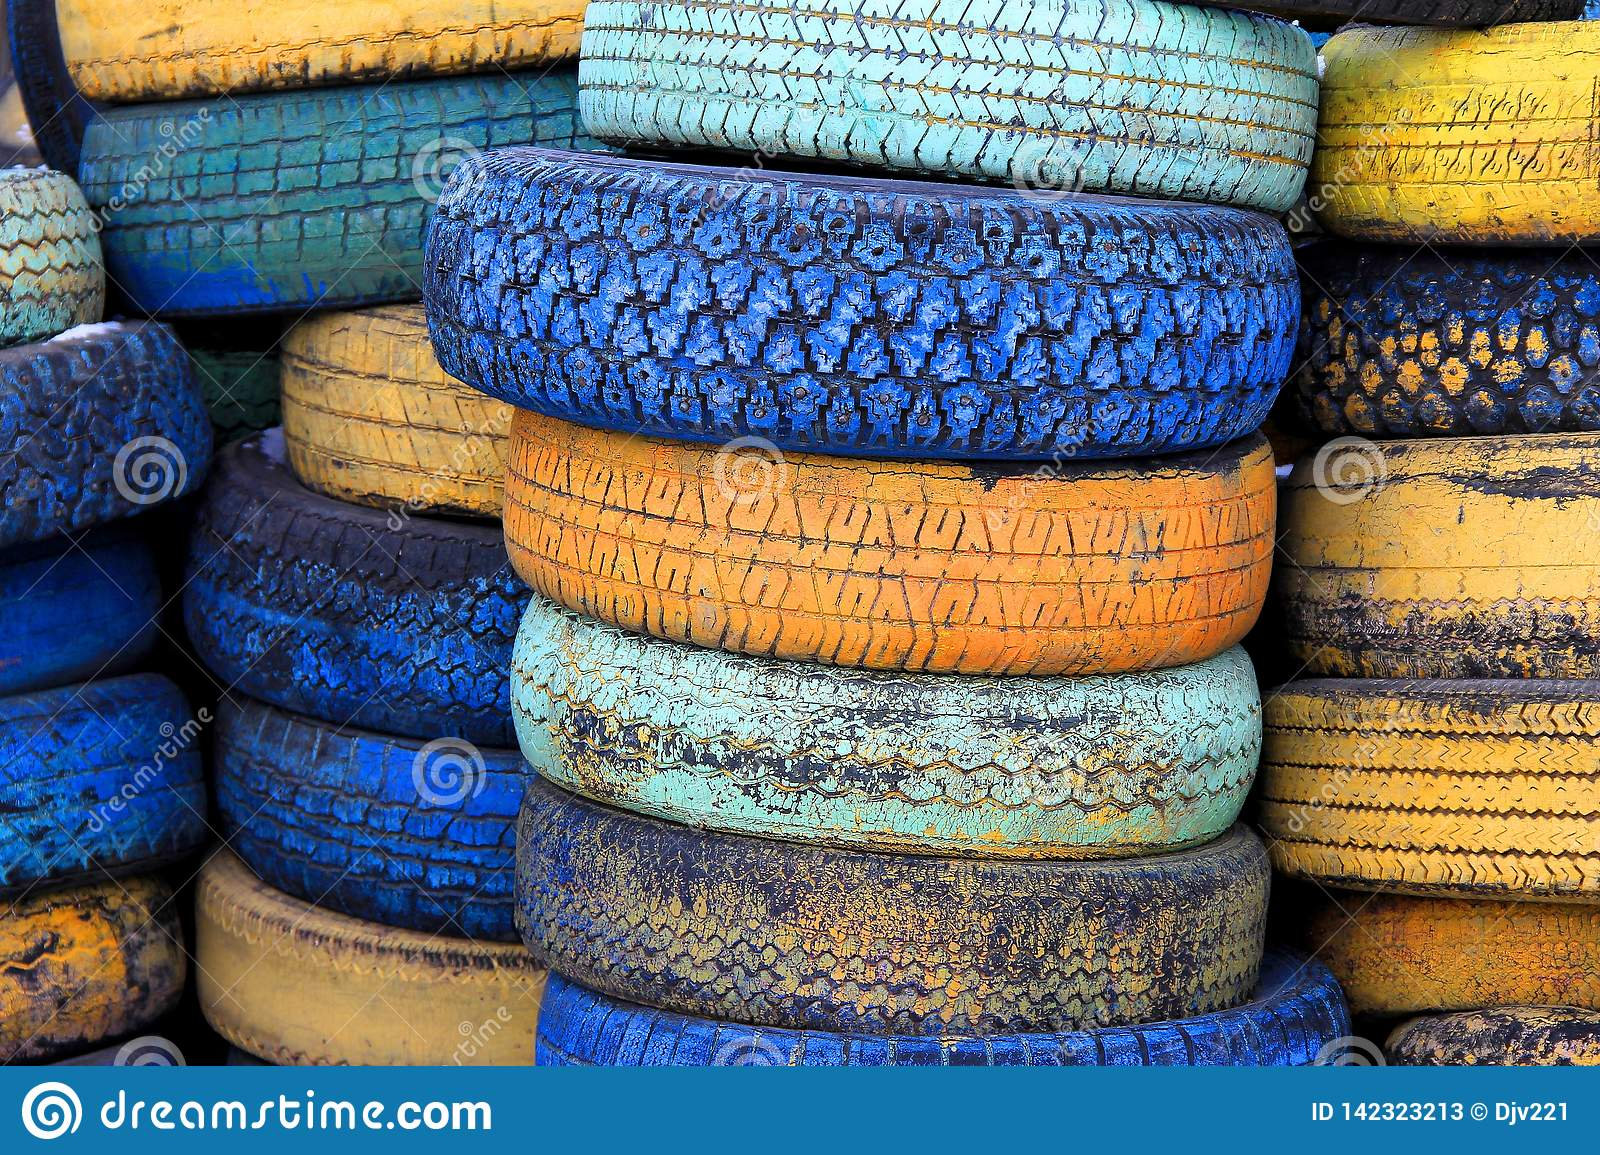 Car tires painted in different colors are stacked on top of each other